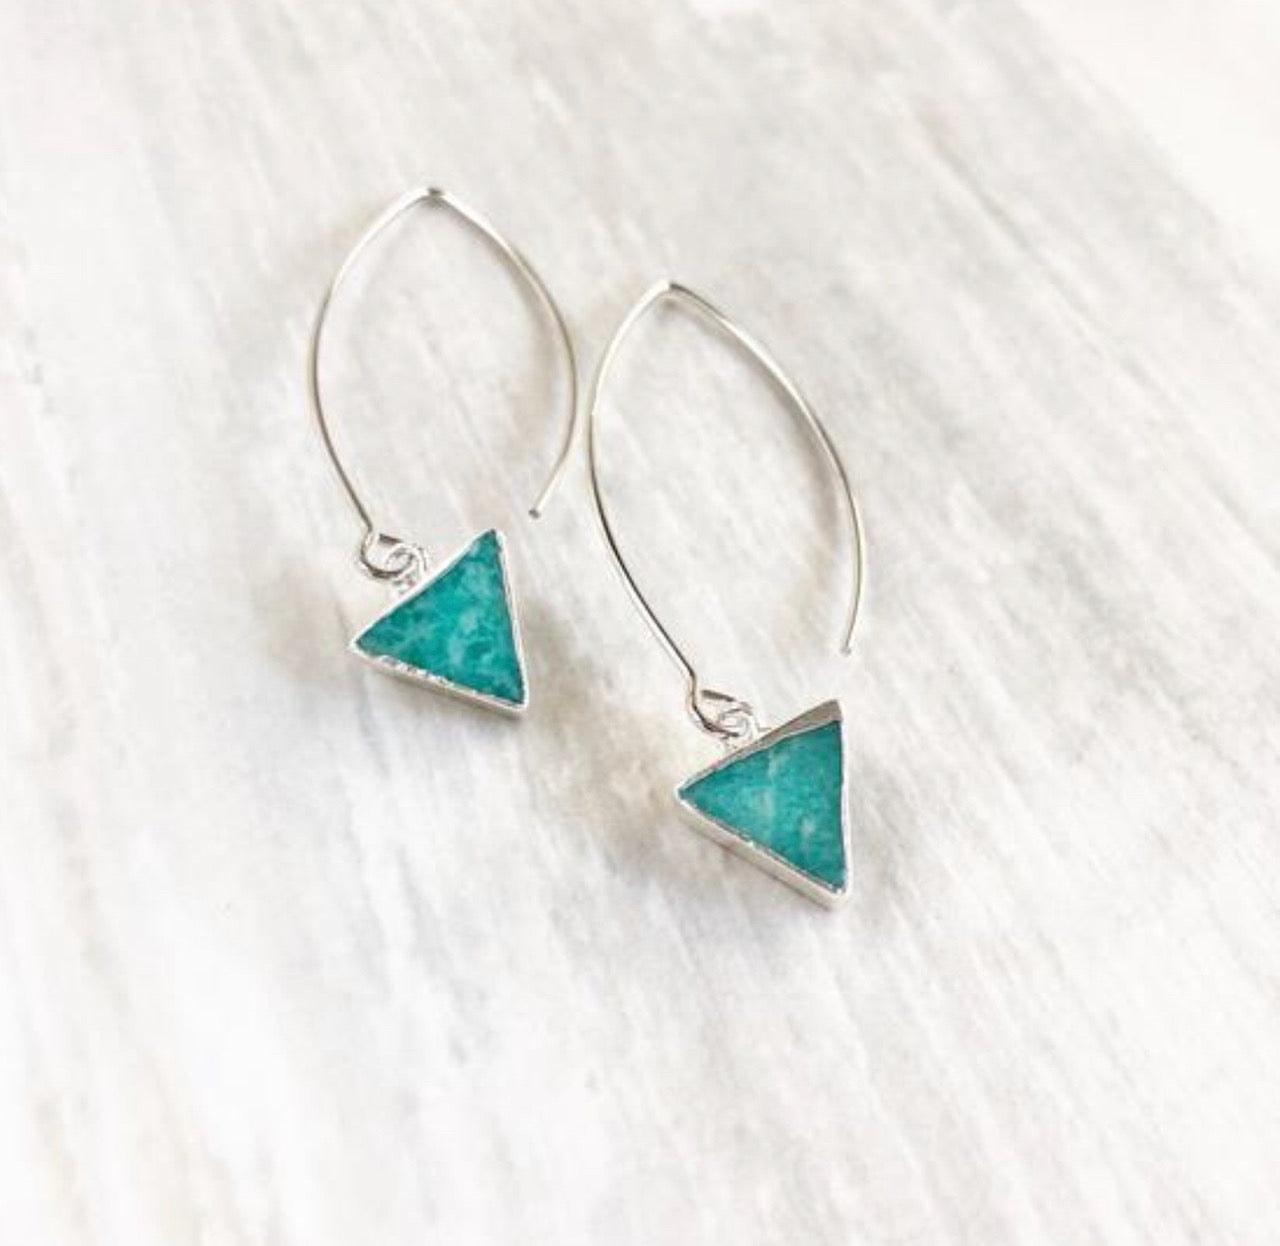 Triangle Drop Earrings with Amazonite Stones. Triangle Earrings. Silver Marquise Earrings. Geomtric.